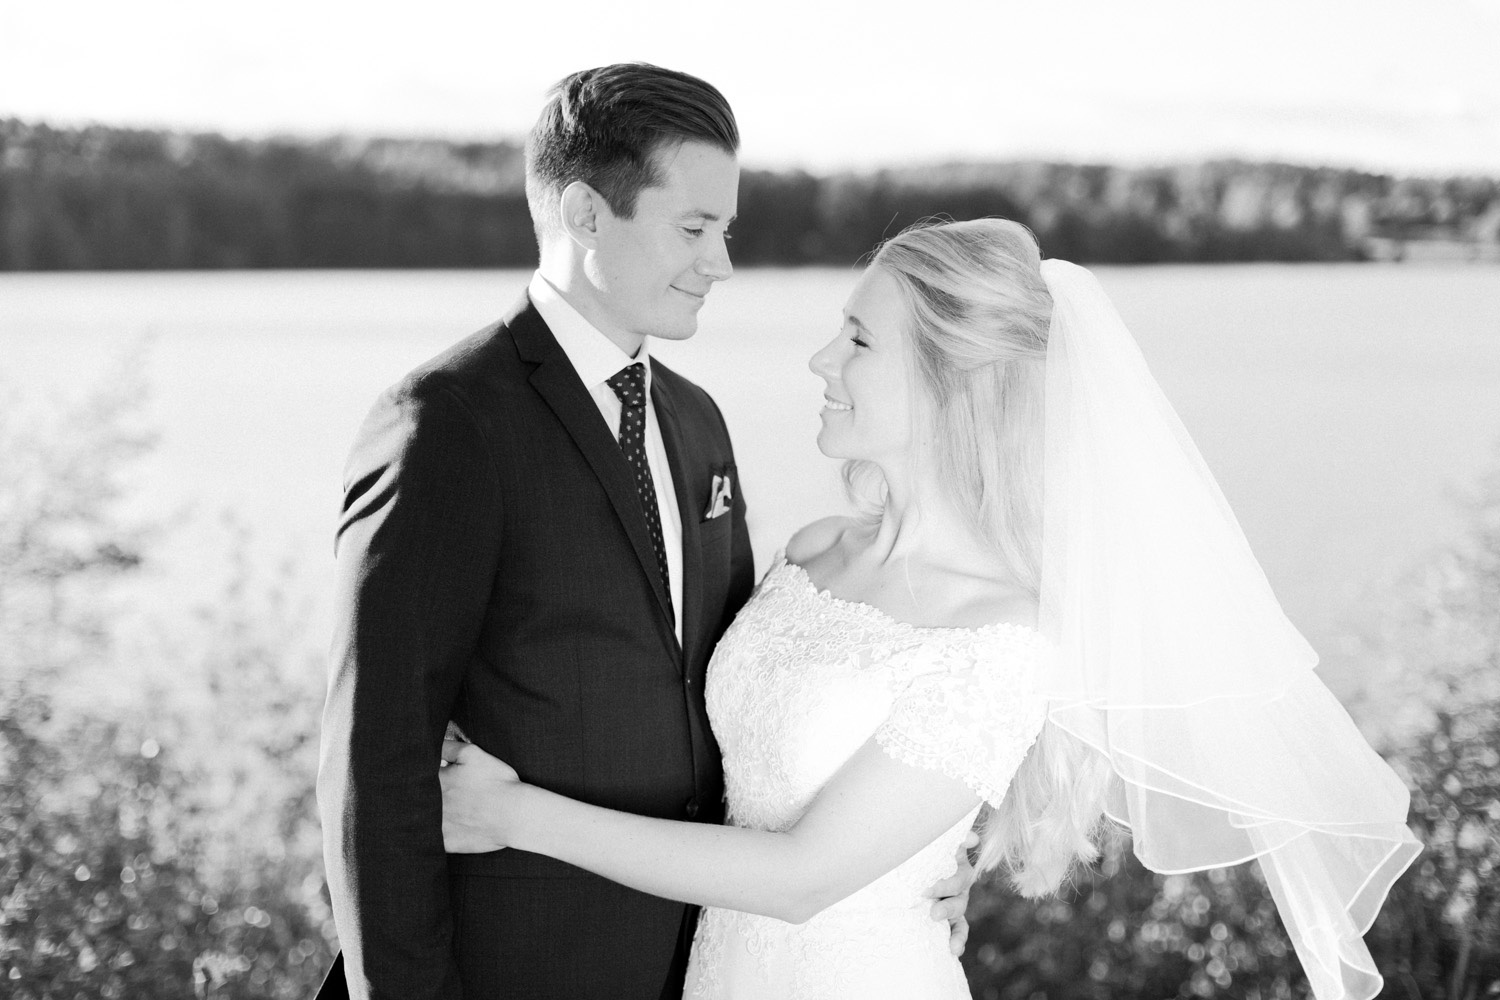 068-sweden-vidbynäs-wedding-photographer-bröllopsfotograf.jpg